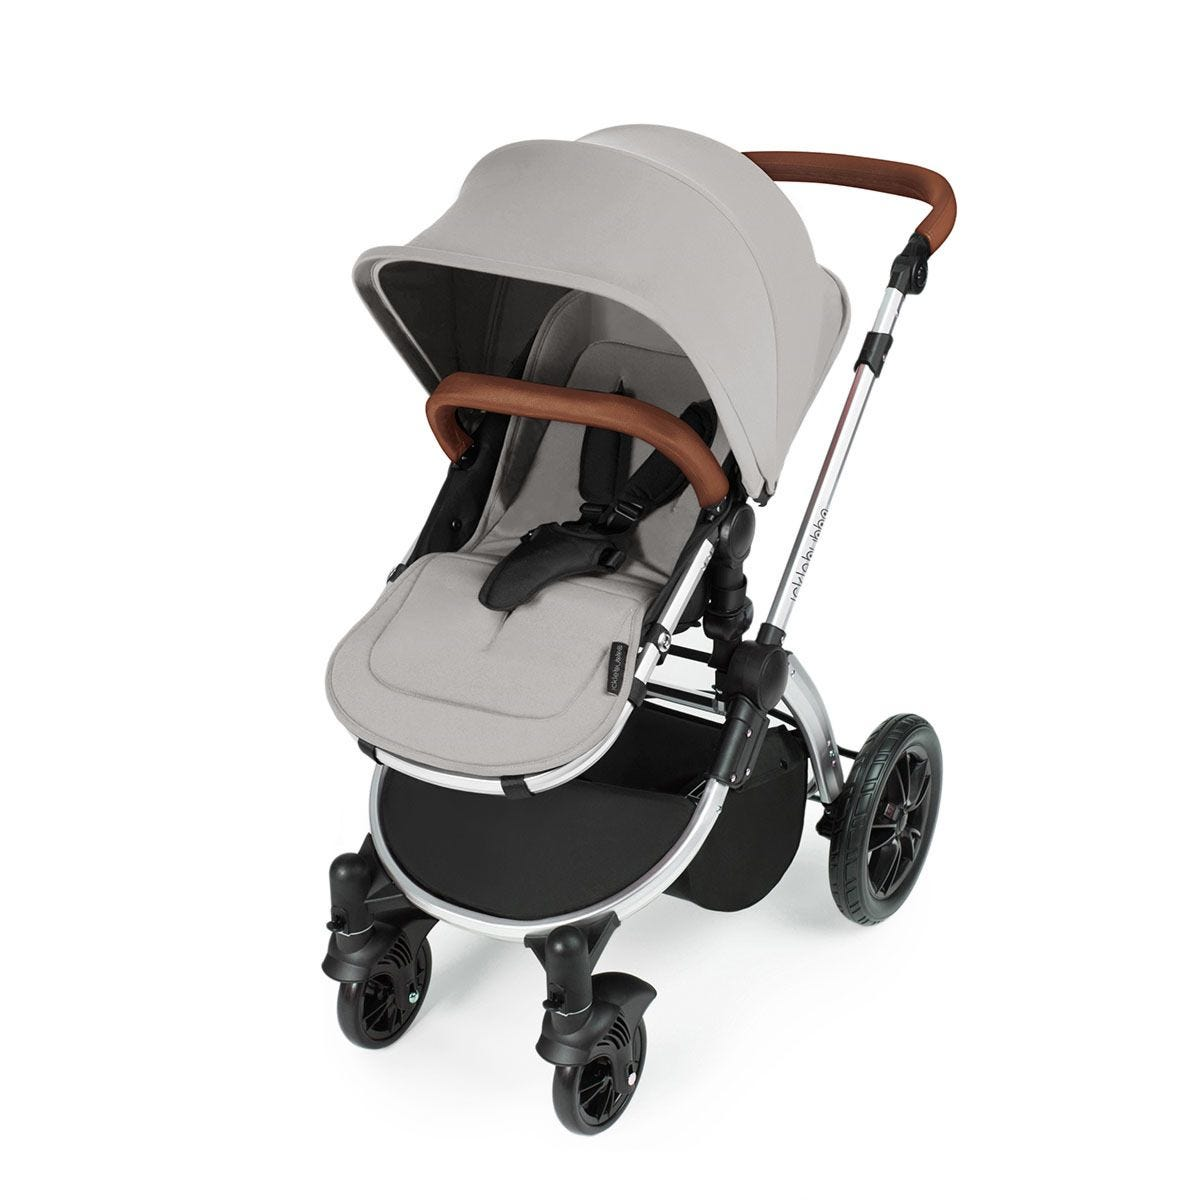 Ickle Bubba Stomp V3 i-Size Travel System with Isofix Base -Silver on Silver with Tan Handles